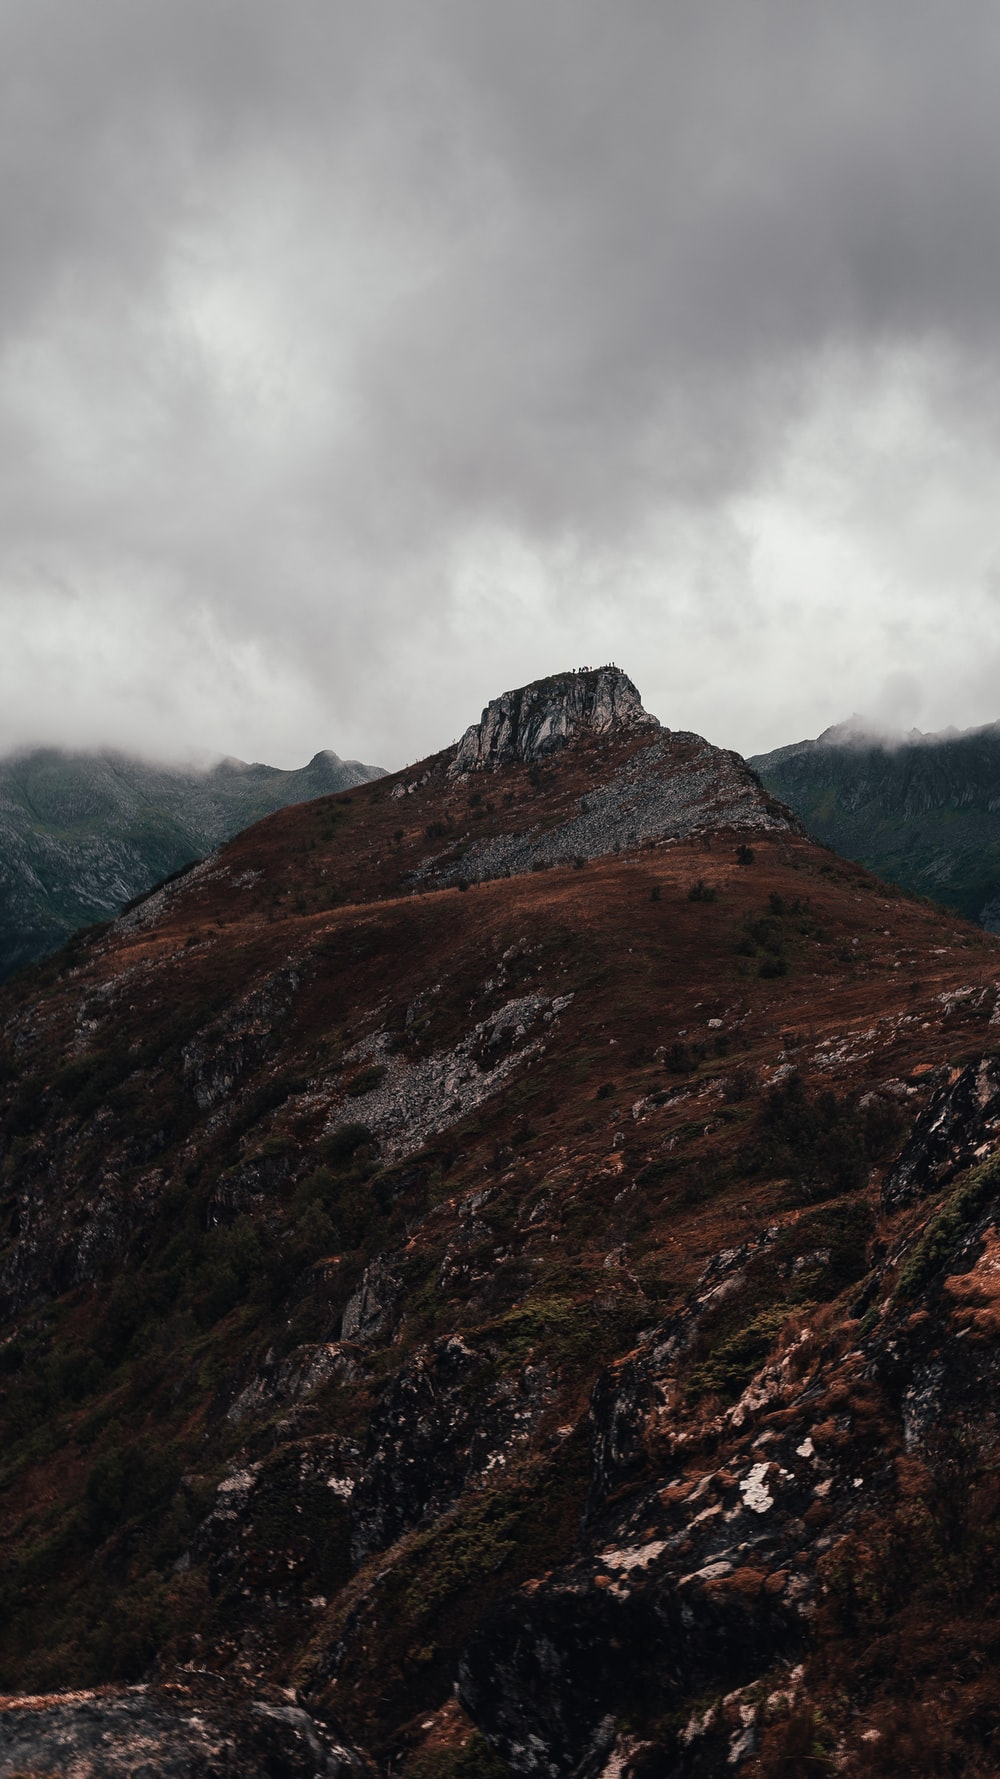 landscape photography of mountain under cloudy sky